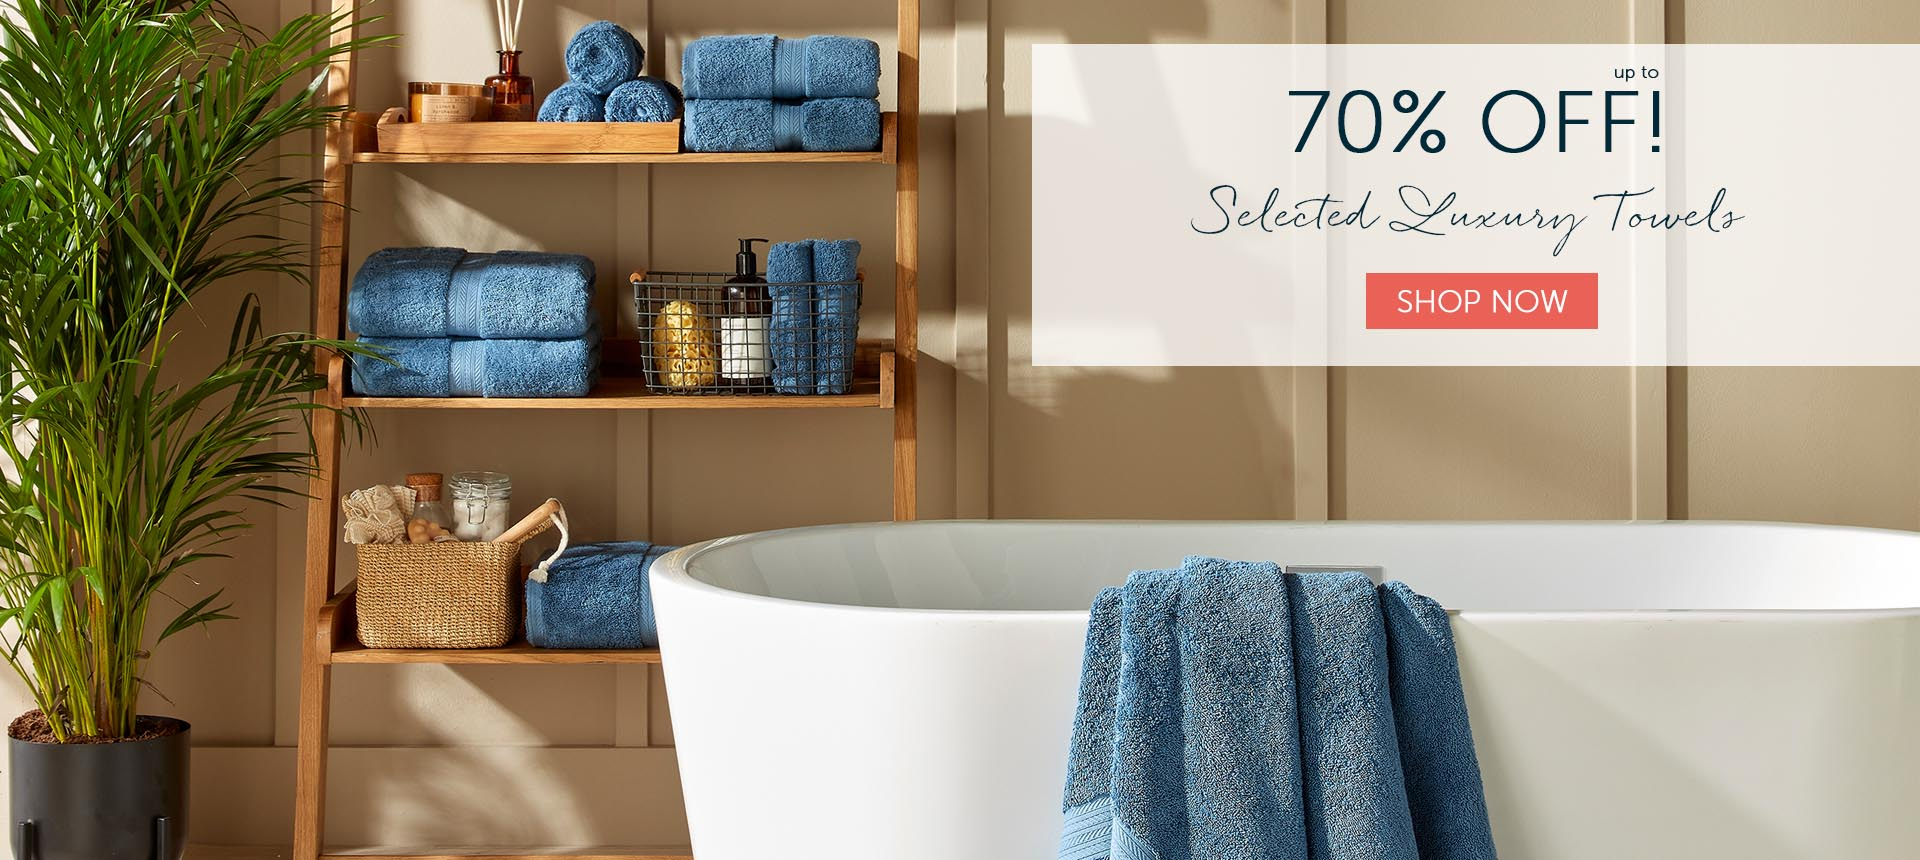 Up to 70% off Christy England towels